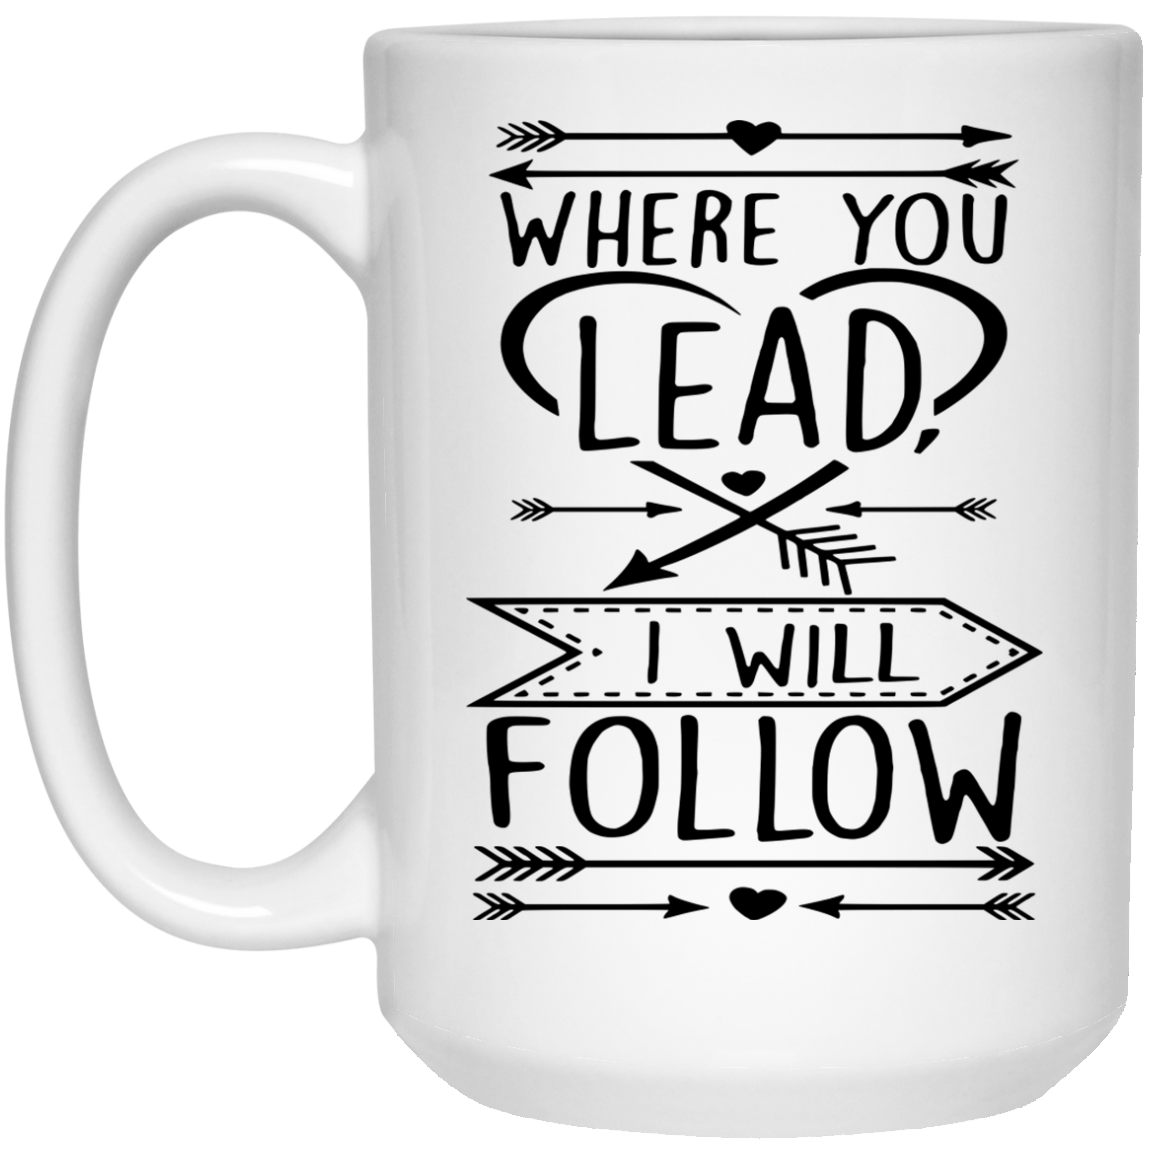 Gilmore Girls mug: Where you lead, I will follow